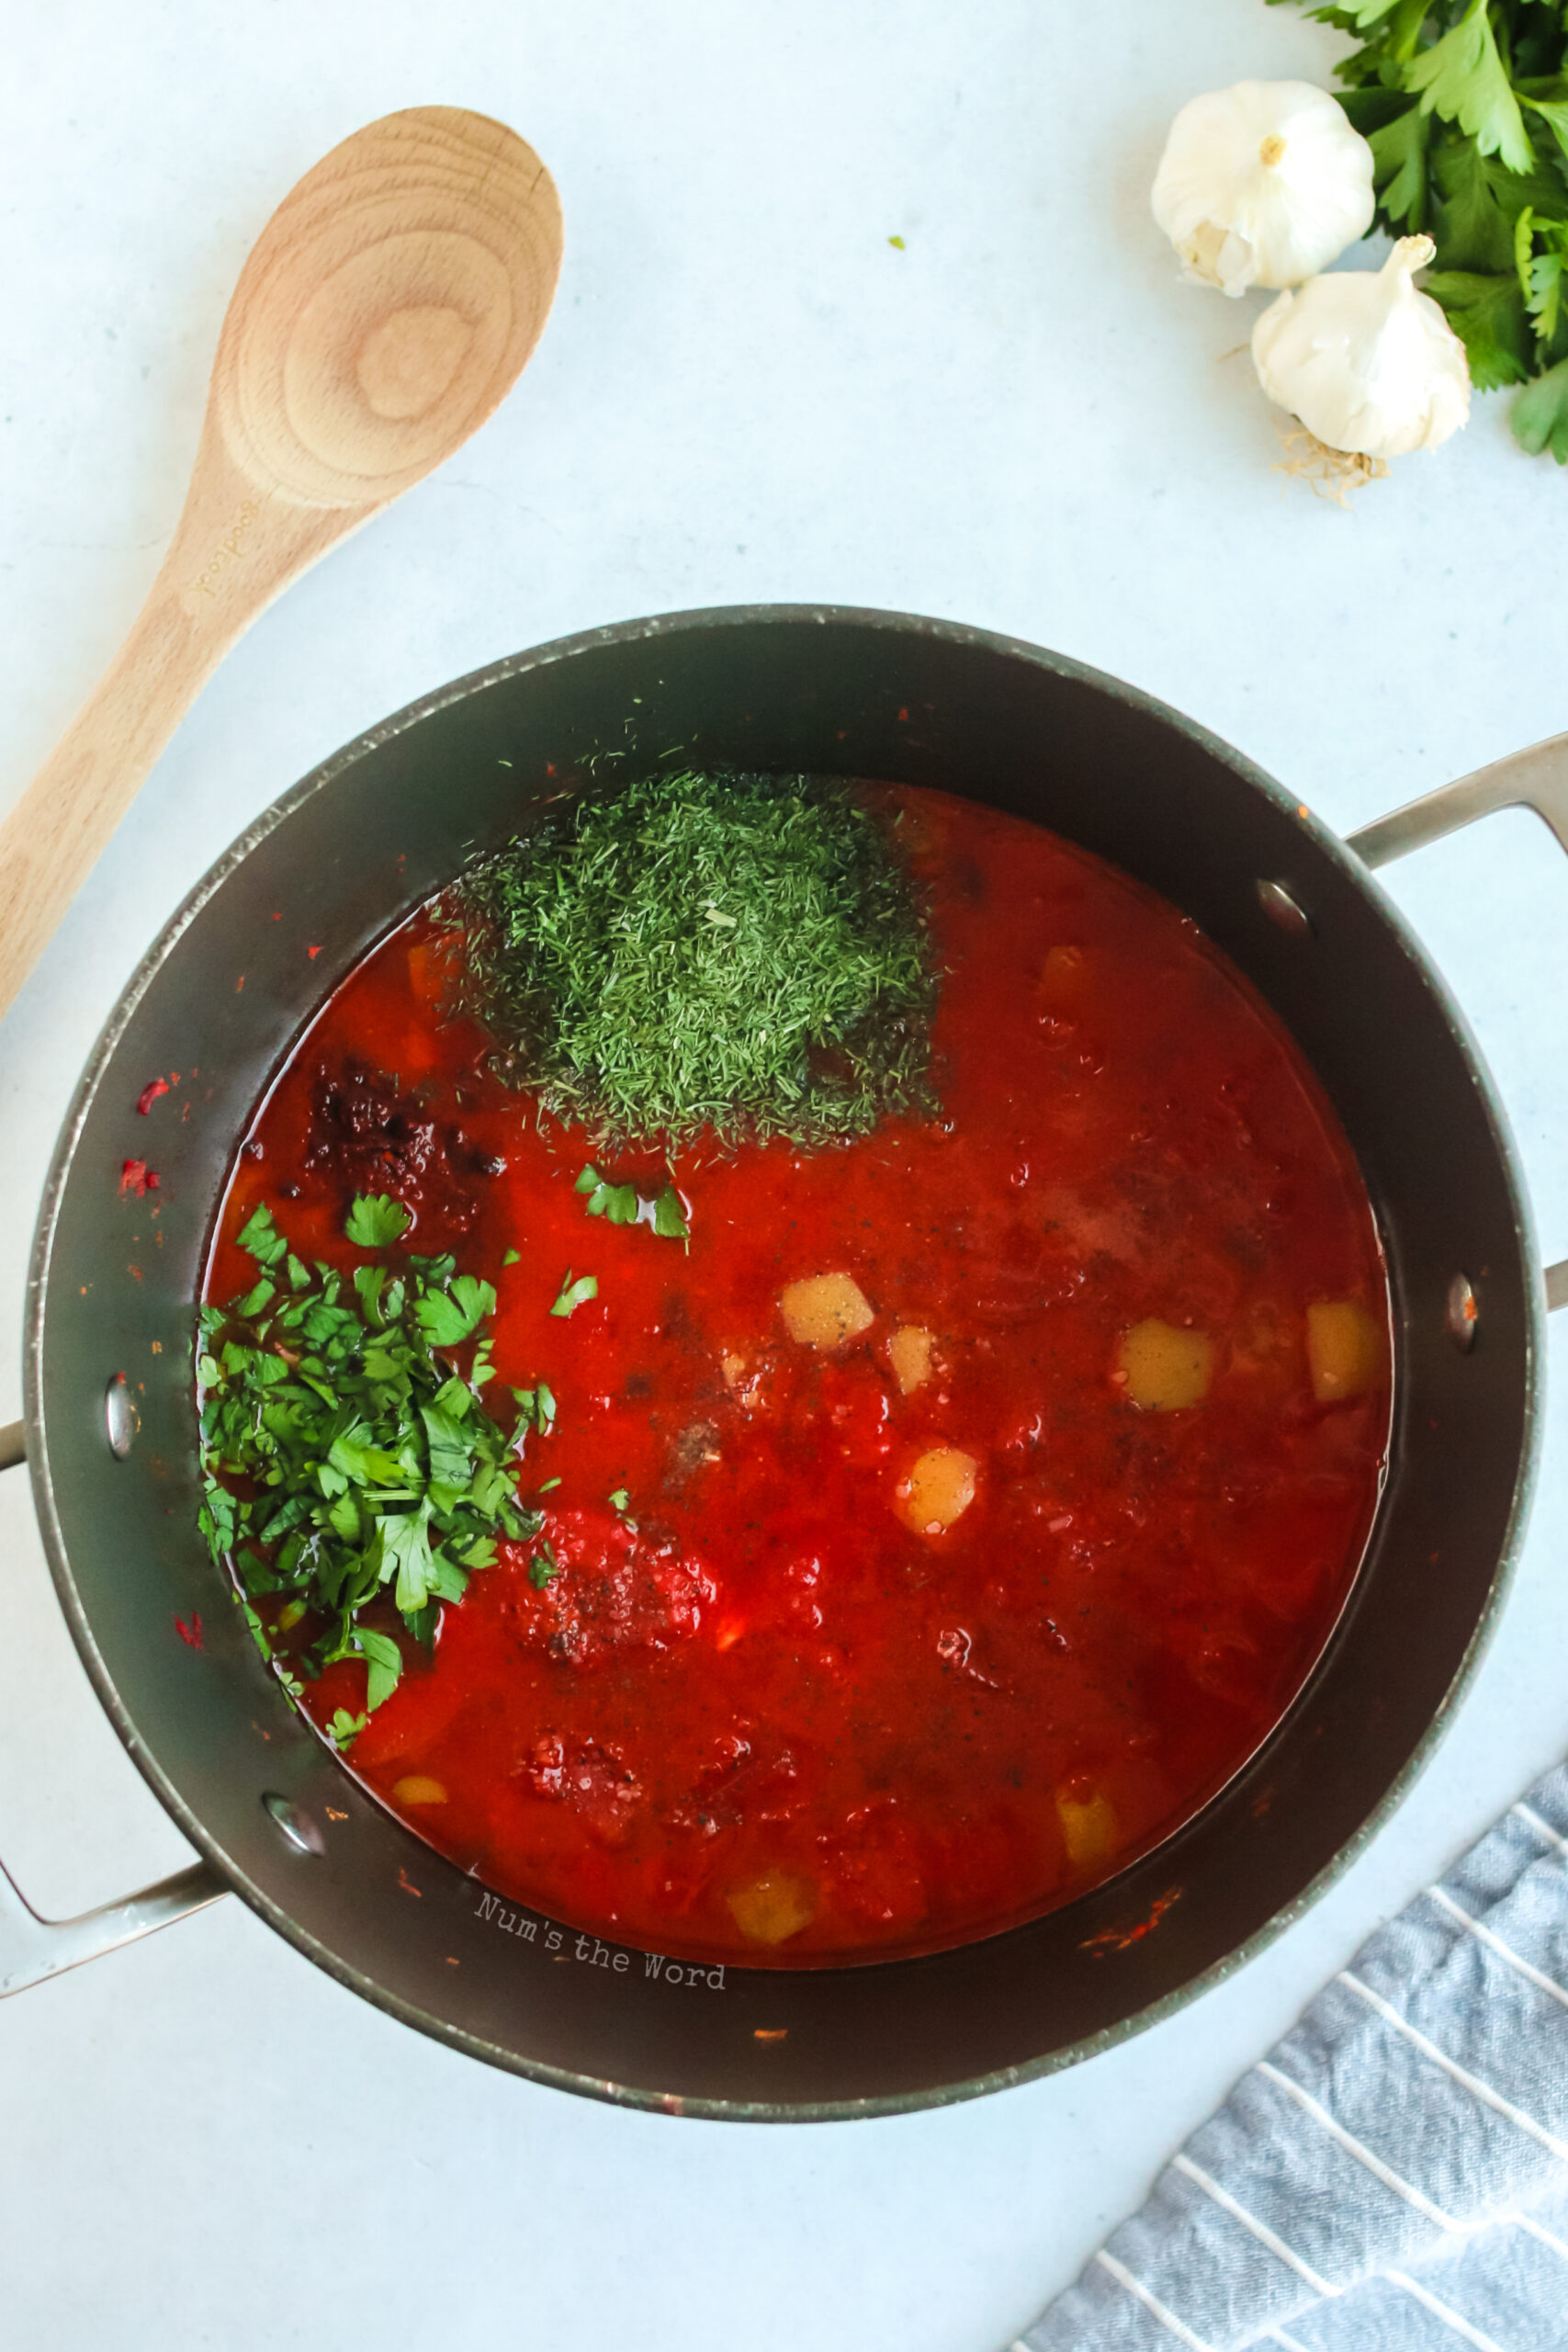 paprika, salt, pepper, sugar, dill, parsley and lemon juice added to borscht